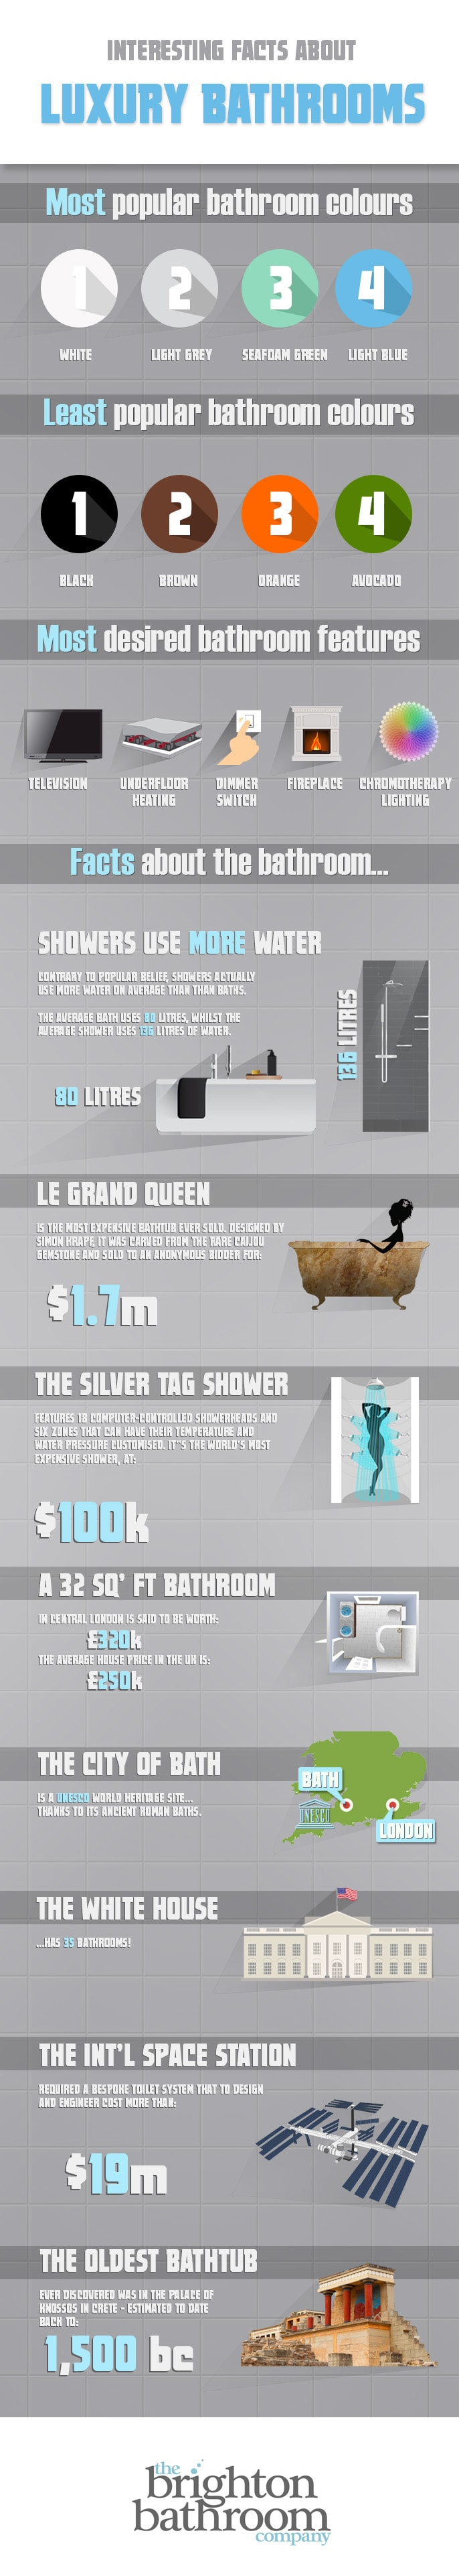 tbbc-luxury-bathroom-infographic-min